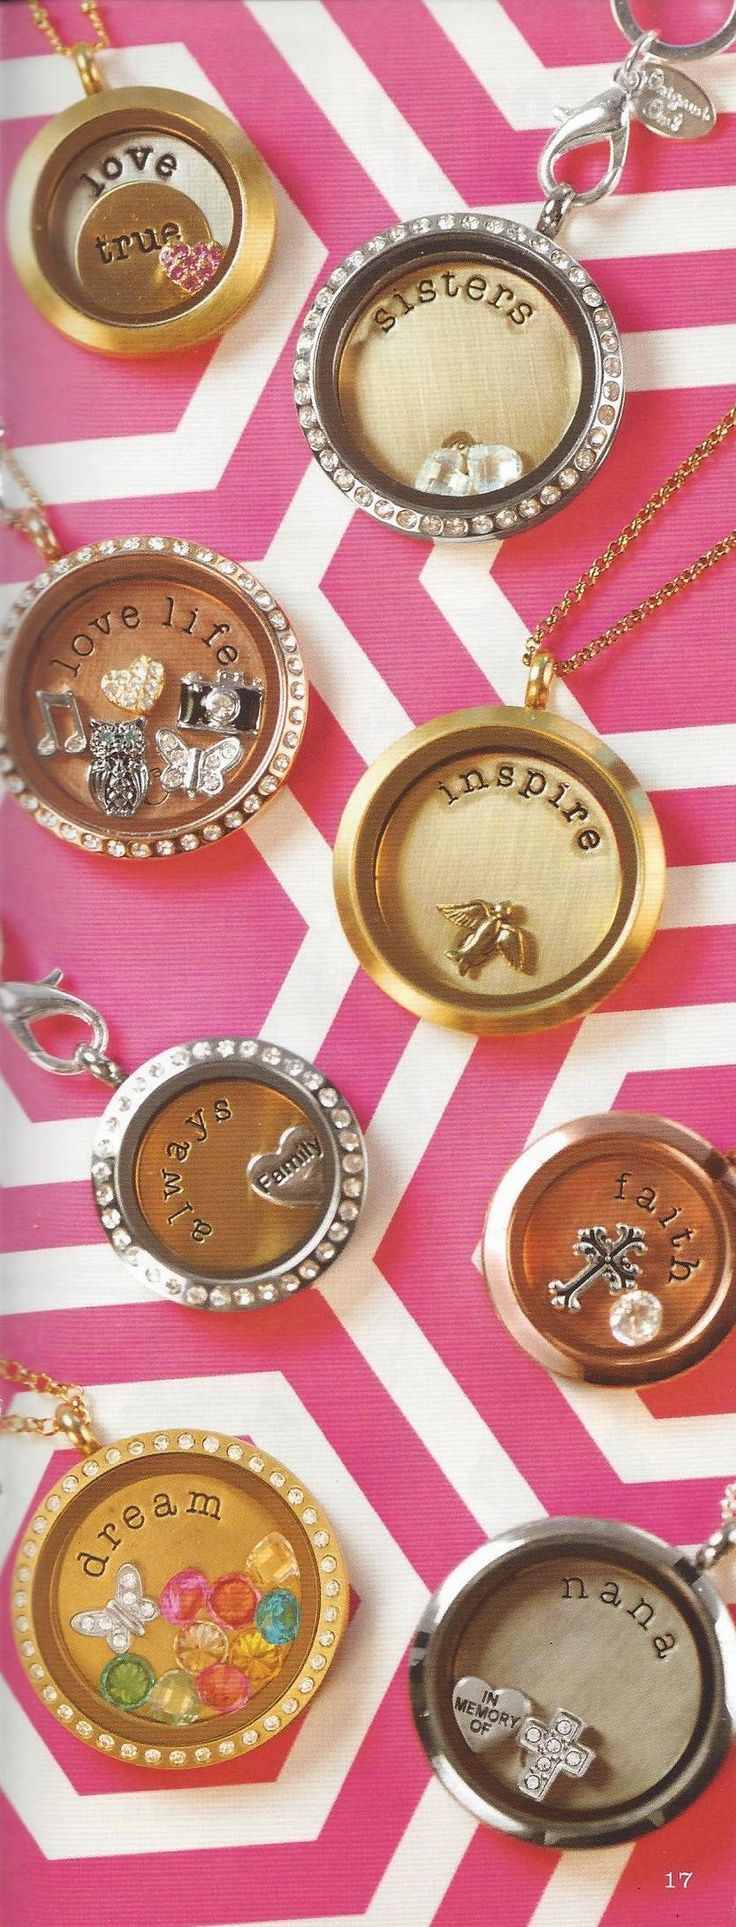 Origami Owl lockets. So many designs you can make...  FREE CHARM WITH A $25 OR MORE PURCHASE... Contact me to place your order YourCharmingLocket@gmail.com or message me on Facebook https://www.facebook.com/YourCharmingLocket